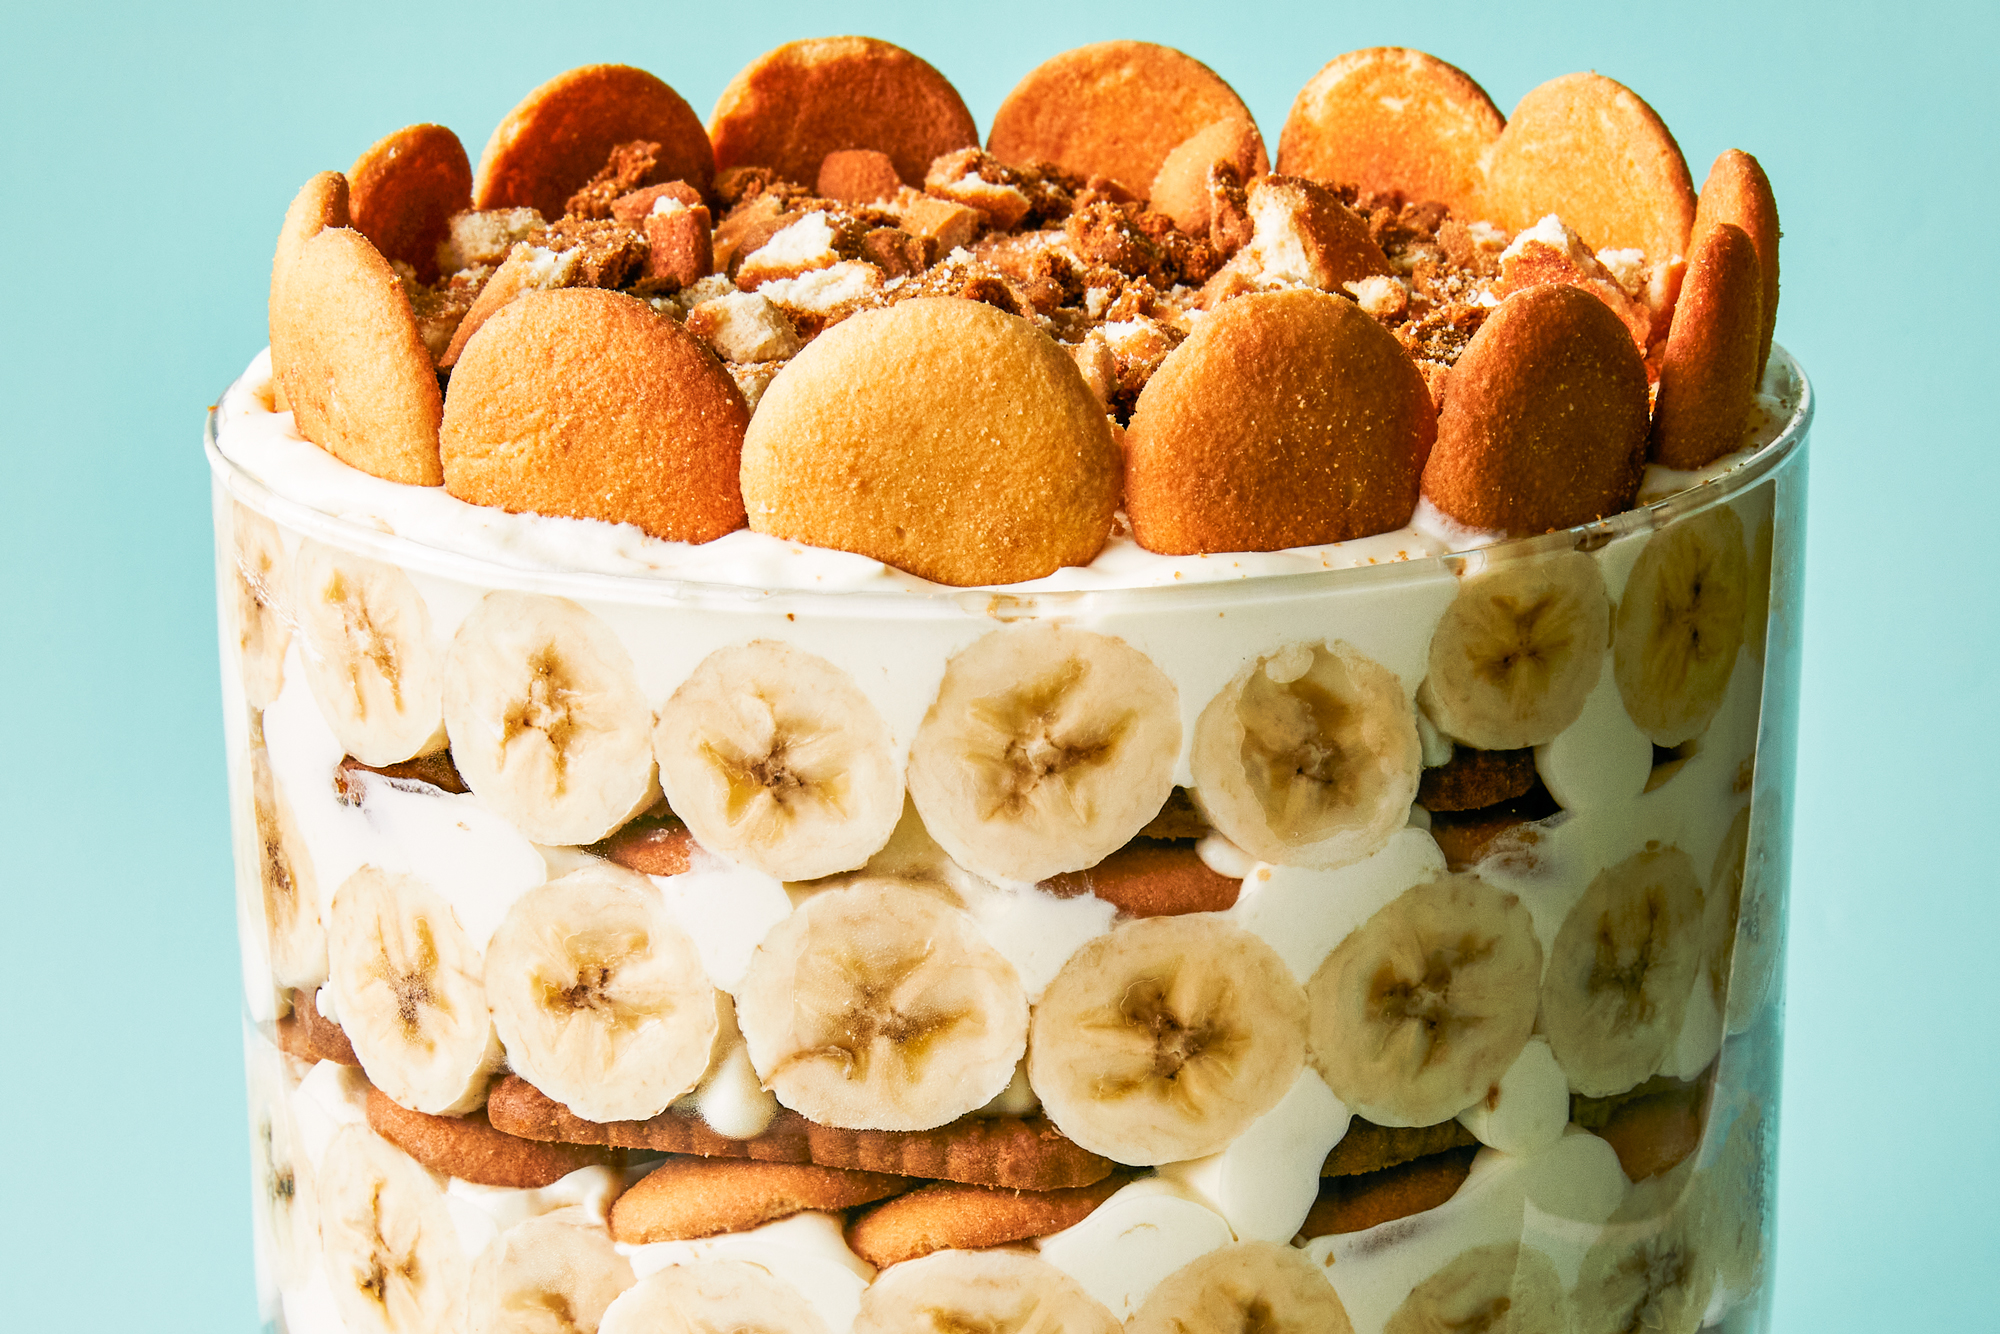 Biscoff Banana Pudding